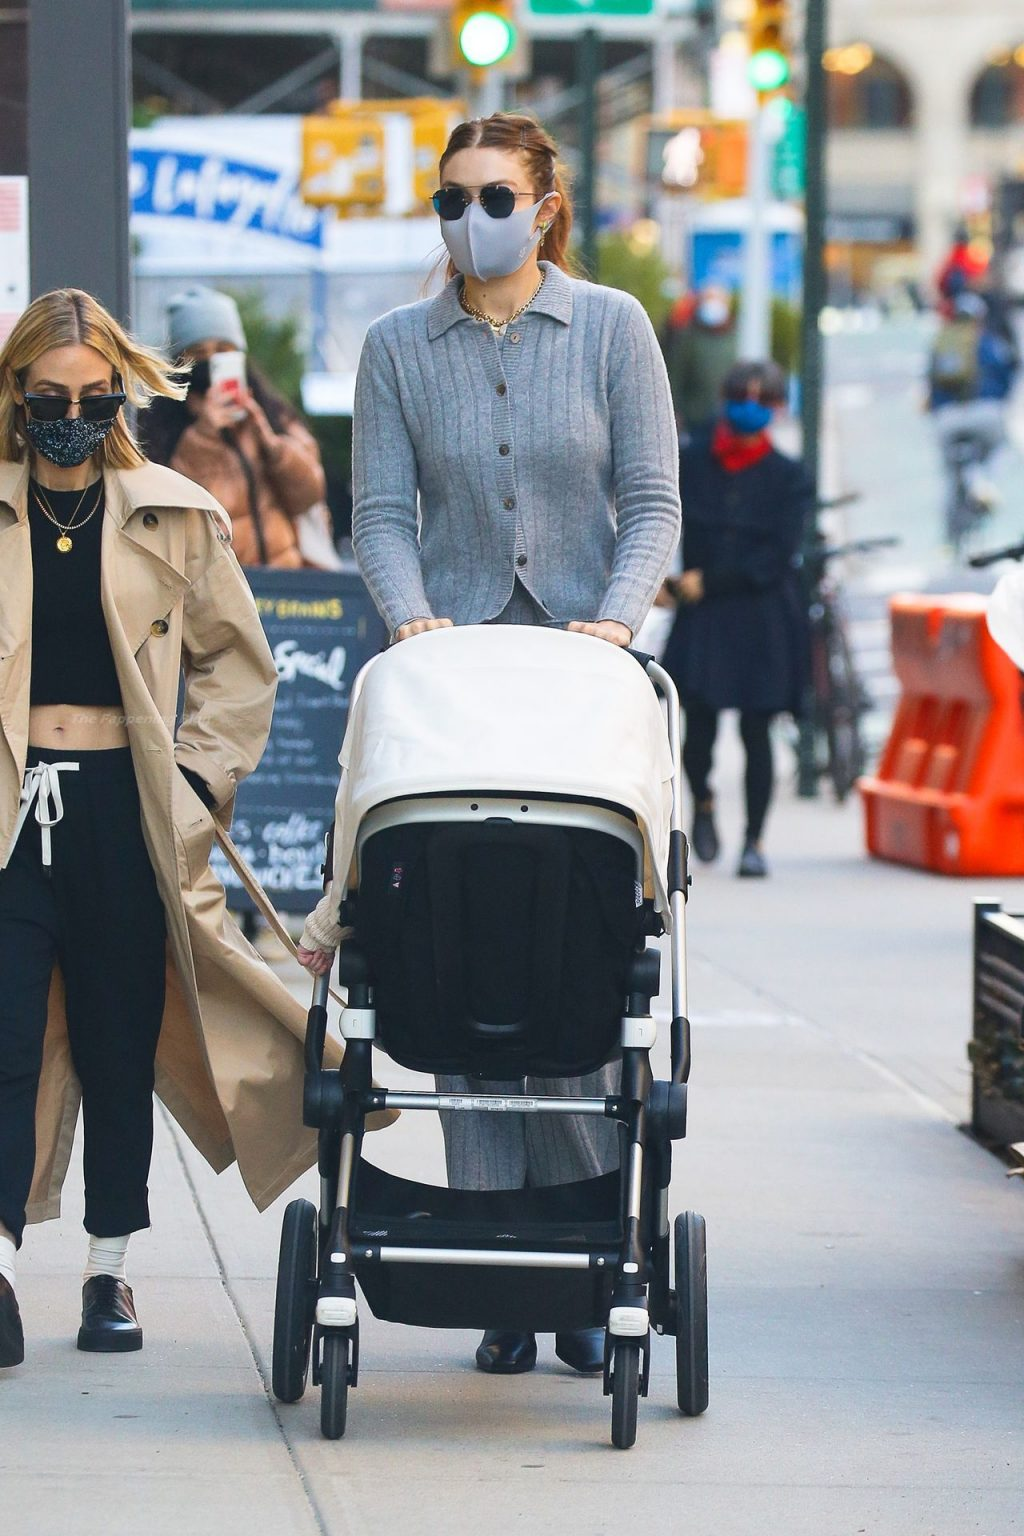 Gigi Hadid is Spotted Pushing Her Baby in Her Stroller in NYC (10 Photos)